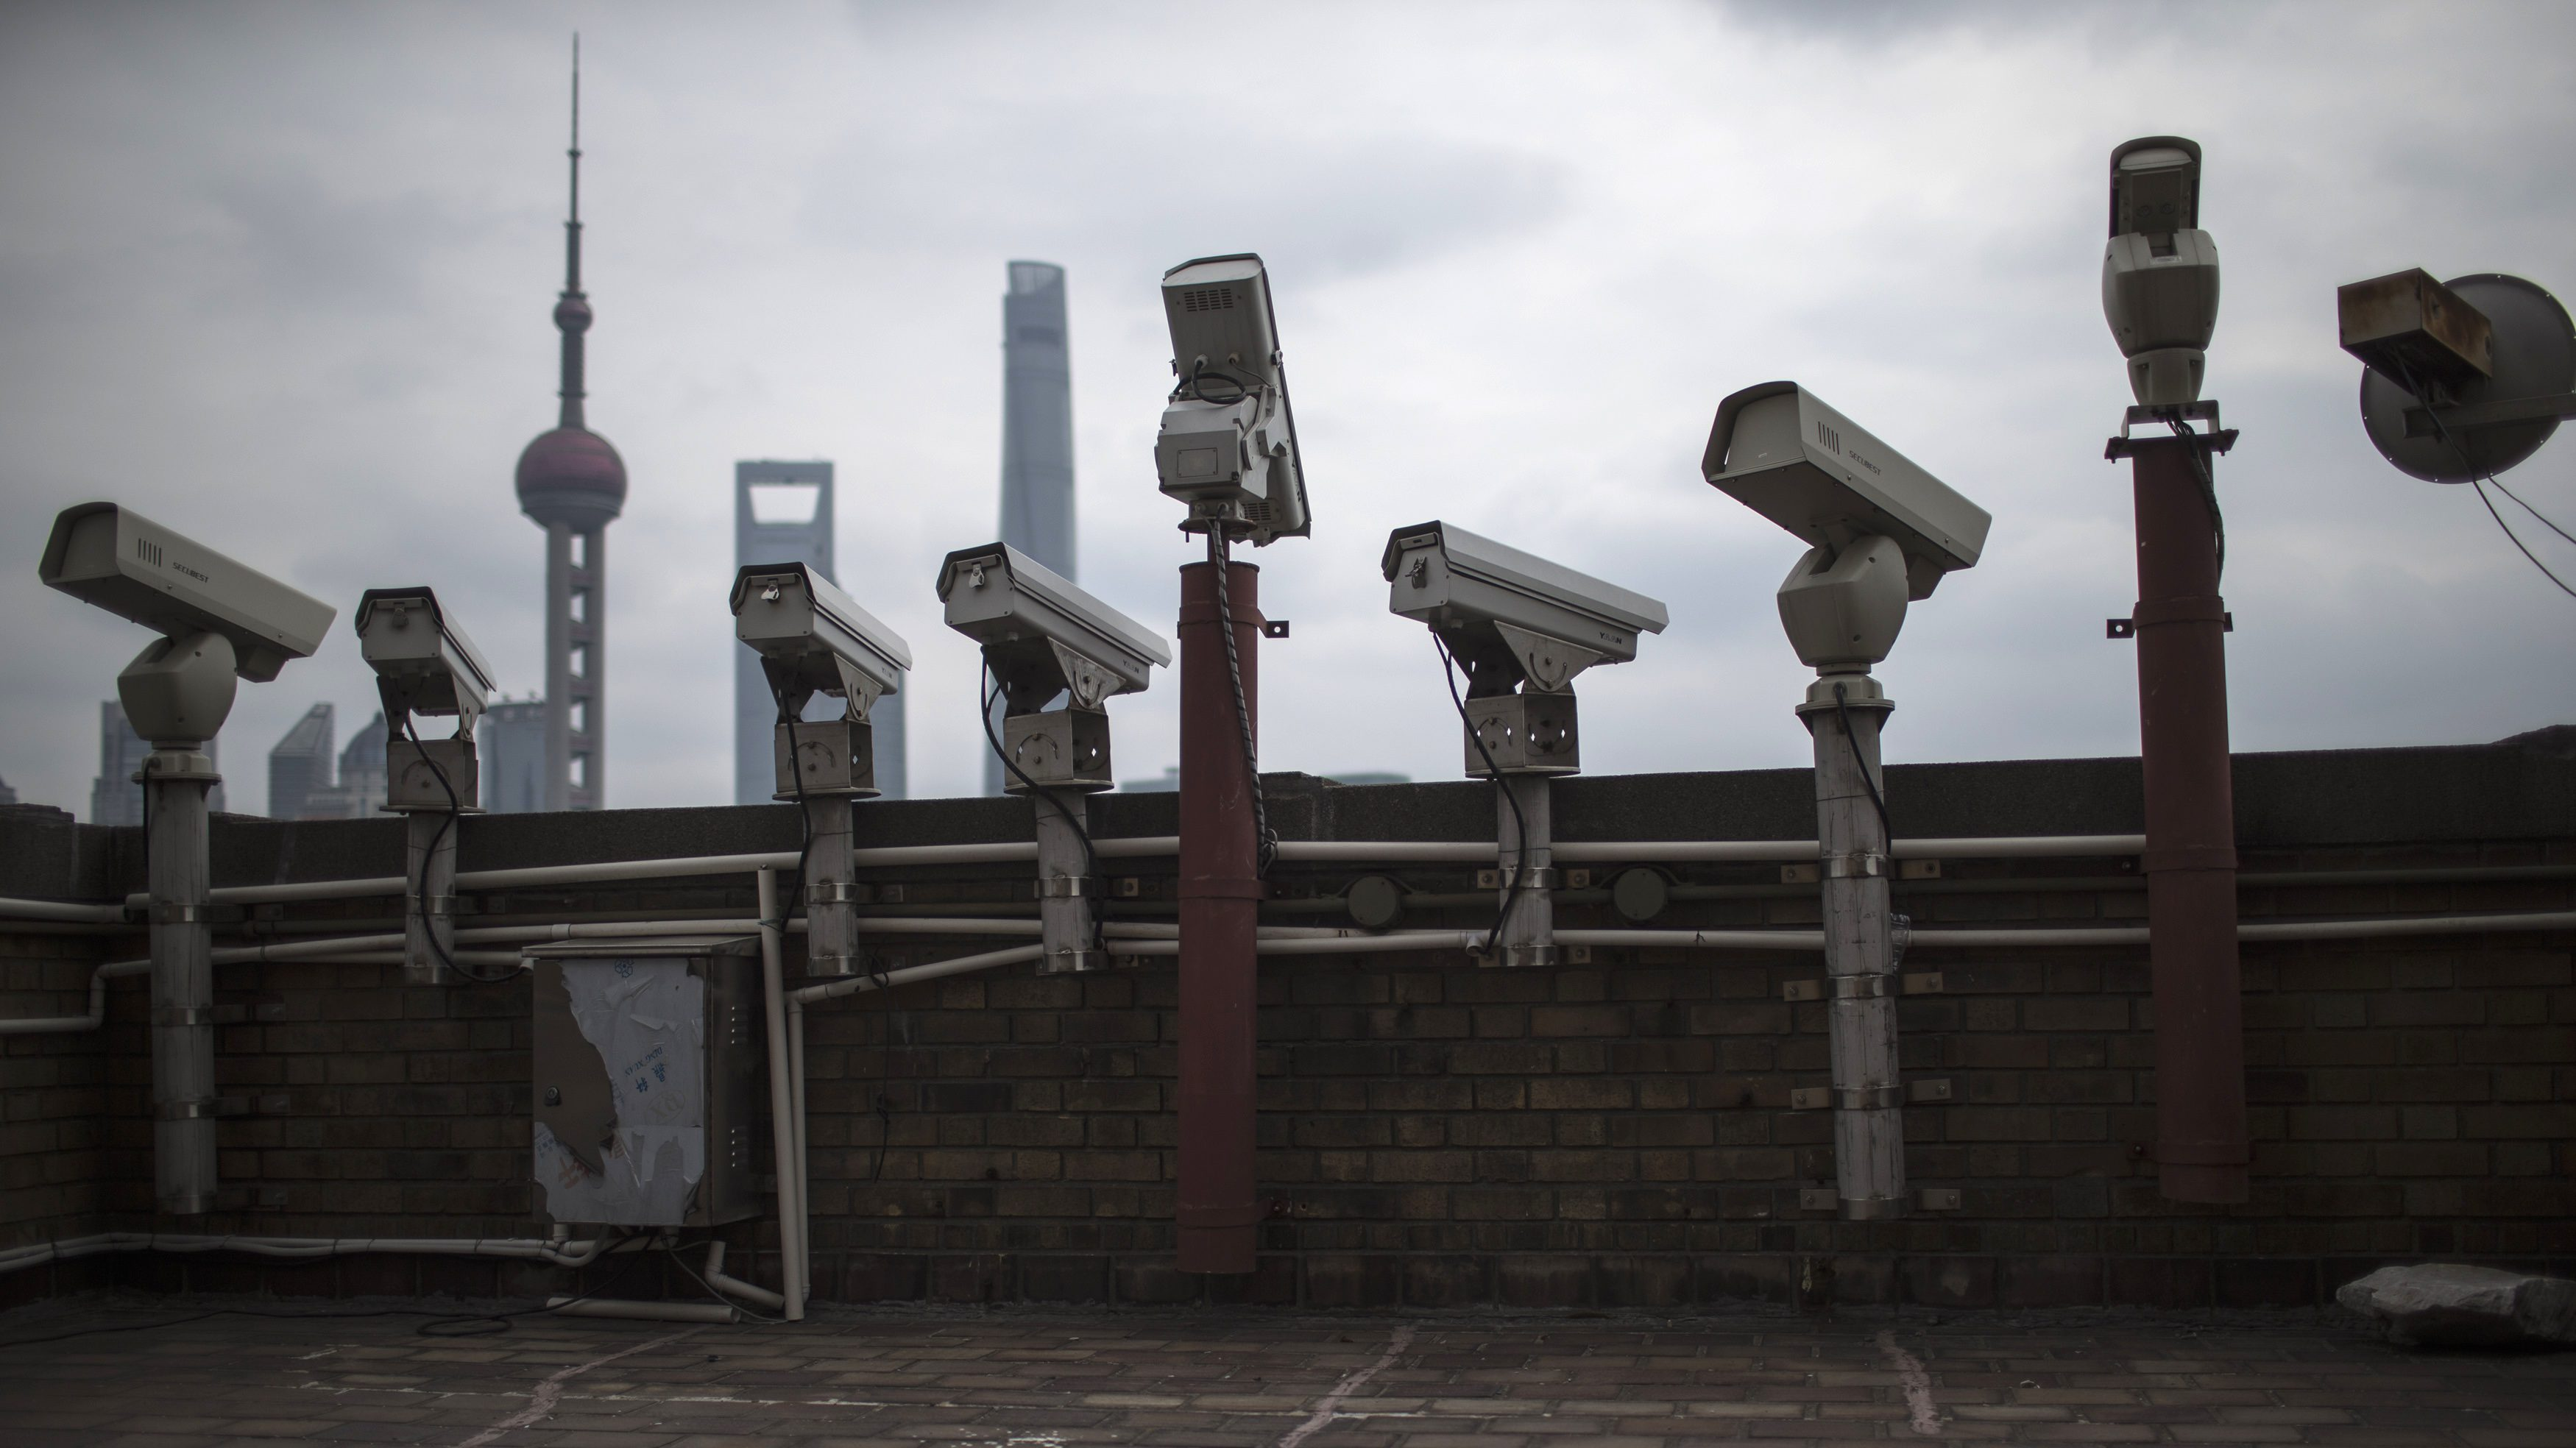 Security cameras are seen on a building at the Bund in front of the financial district of Pudong in Shanghai March 6, 2015. China's 2015 economic growth will meet the official target of around 7 percent, even though the economy faces headwinds, a senior government official said on Thursday.